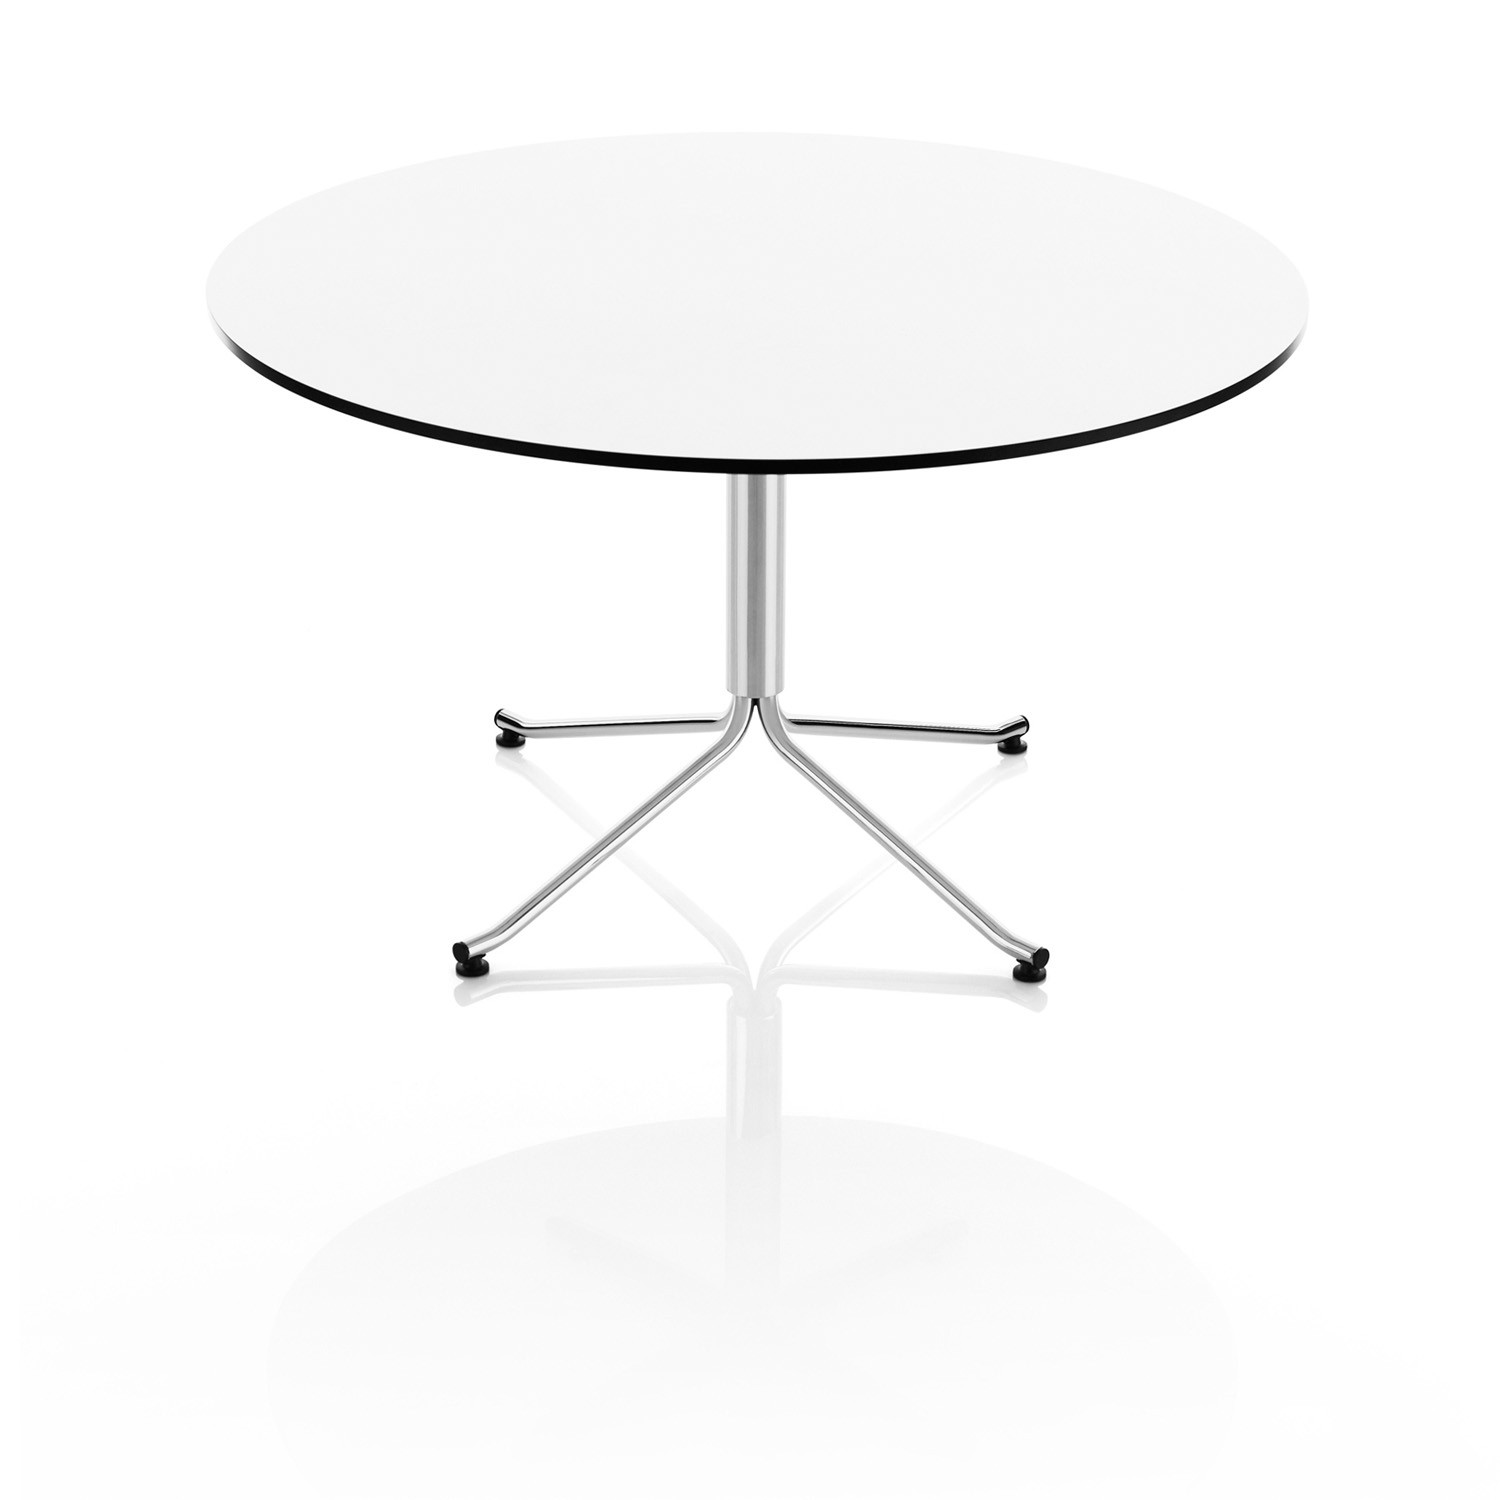 Millibar Circular Lounge Table